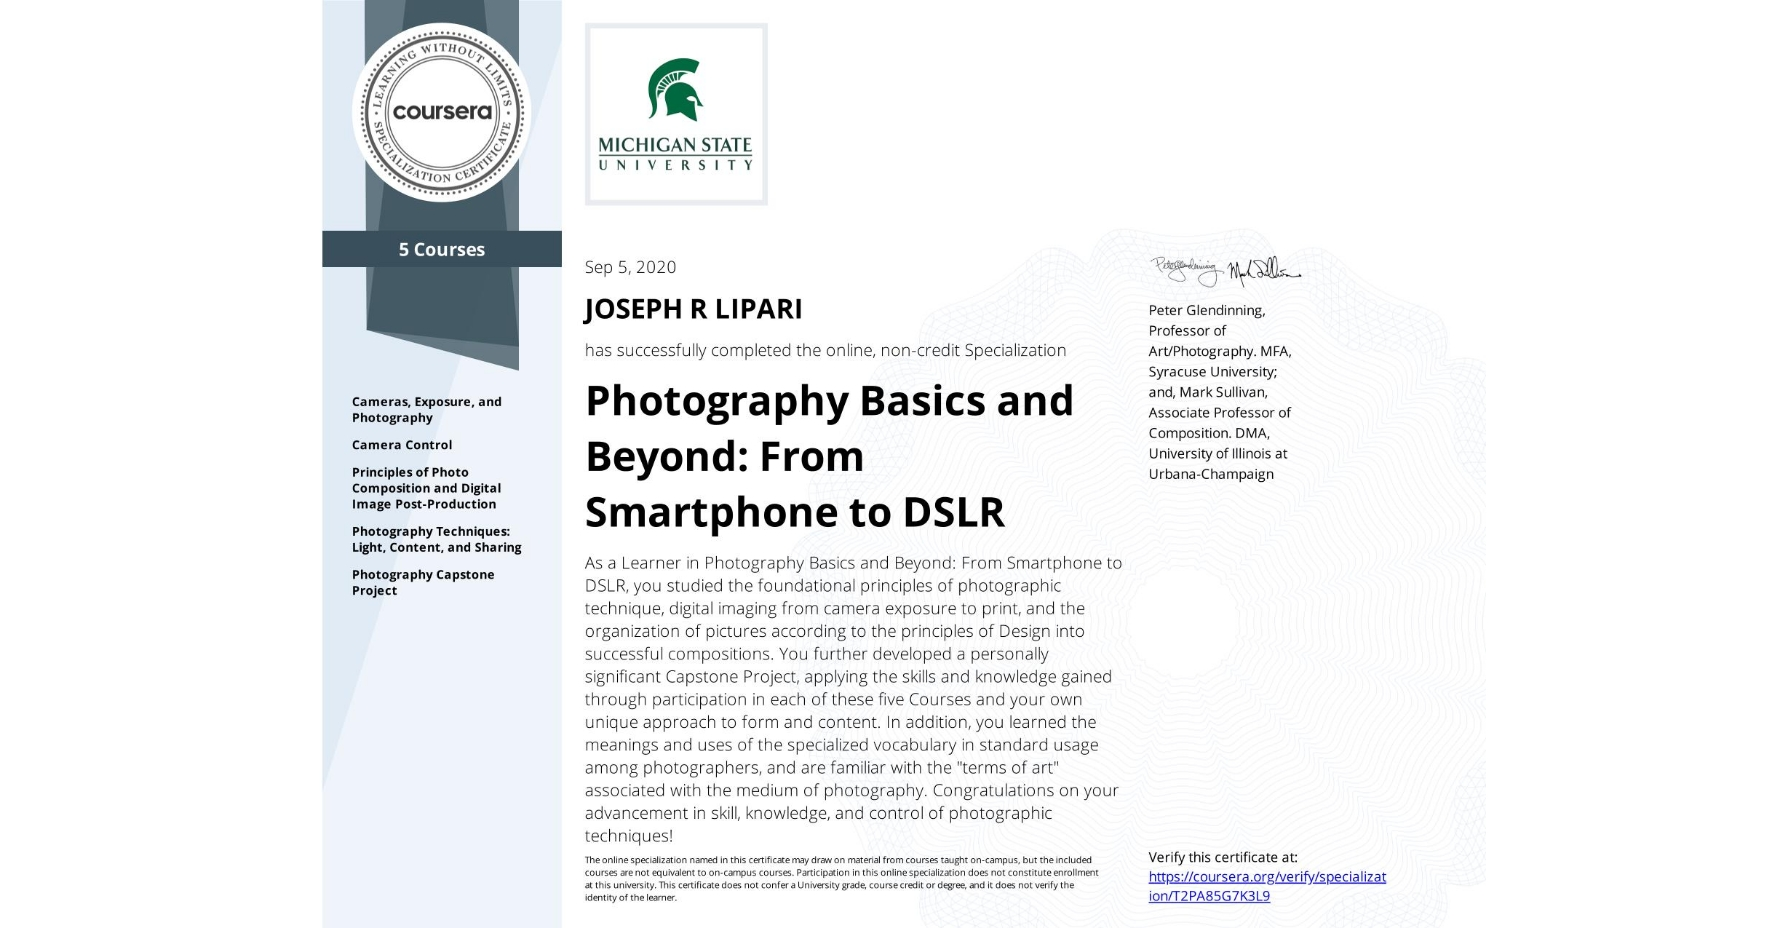 """View certificate for JOSEPH R  LIPARI, Photography Basics and Beyond: From Smartphone to DSLR, offered through Coursera. As a Learner in Photography Basics and Beyond: From Smartphone to DSLR, you studied the foundational principles of photographic technique, digital imaging from camera exposure to print, and  the organization of pictures according to the principles of Design into successful compositions.      You further developed a personally significant Capstone Project, applying the skills and knowledge gained through participation in each of these five Courses and your own unique approach to form and content.  In addition, you learned the meanings and uses of the specialized vocabulary in standard usage among photographers, and are familiar with the """"terms of art"""" associated with the medium of photography.  Congratulations on your advancement in skill, knowledge, and control of photographic techniques!"""